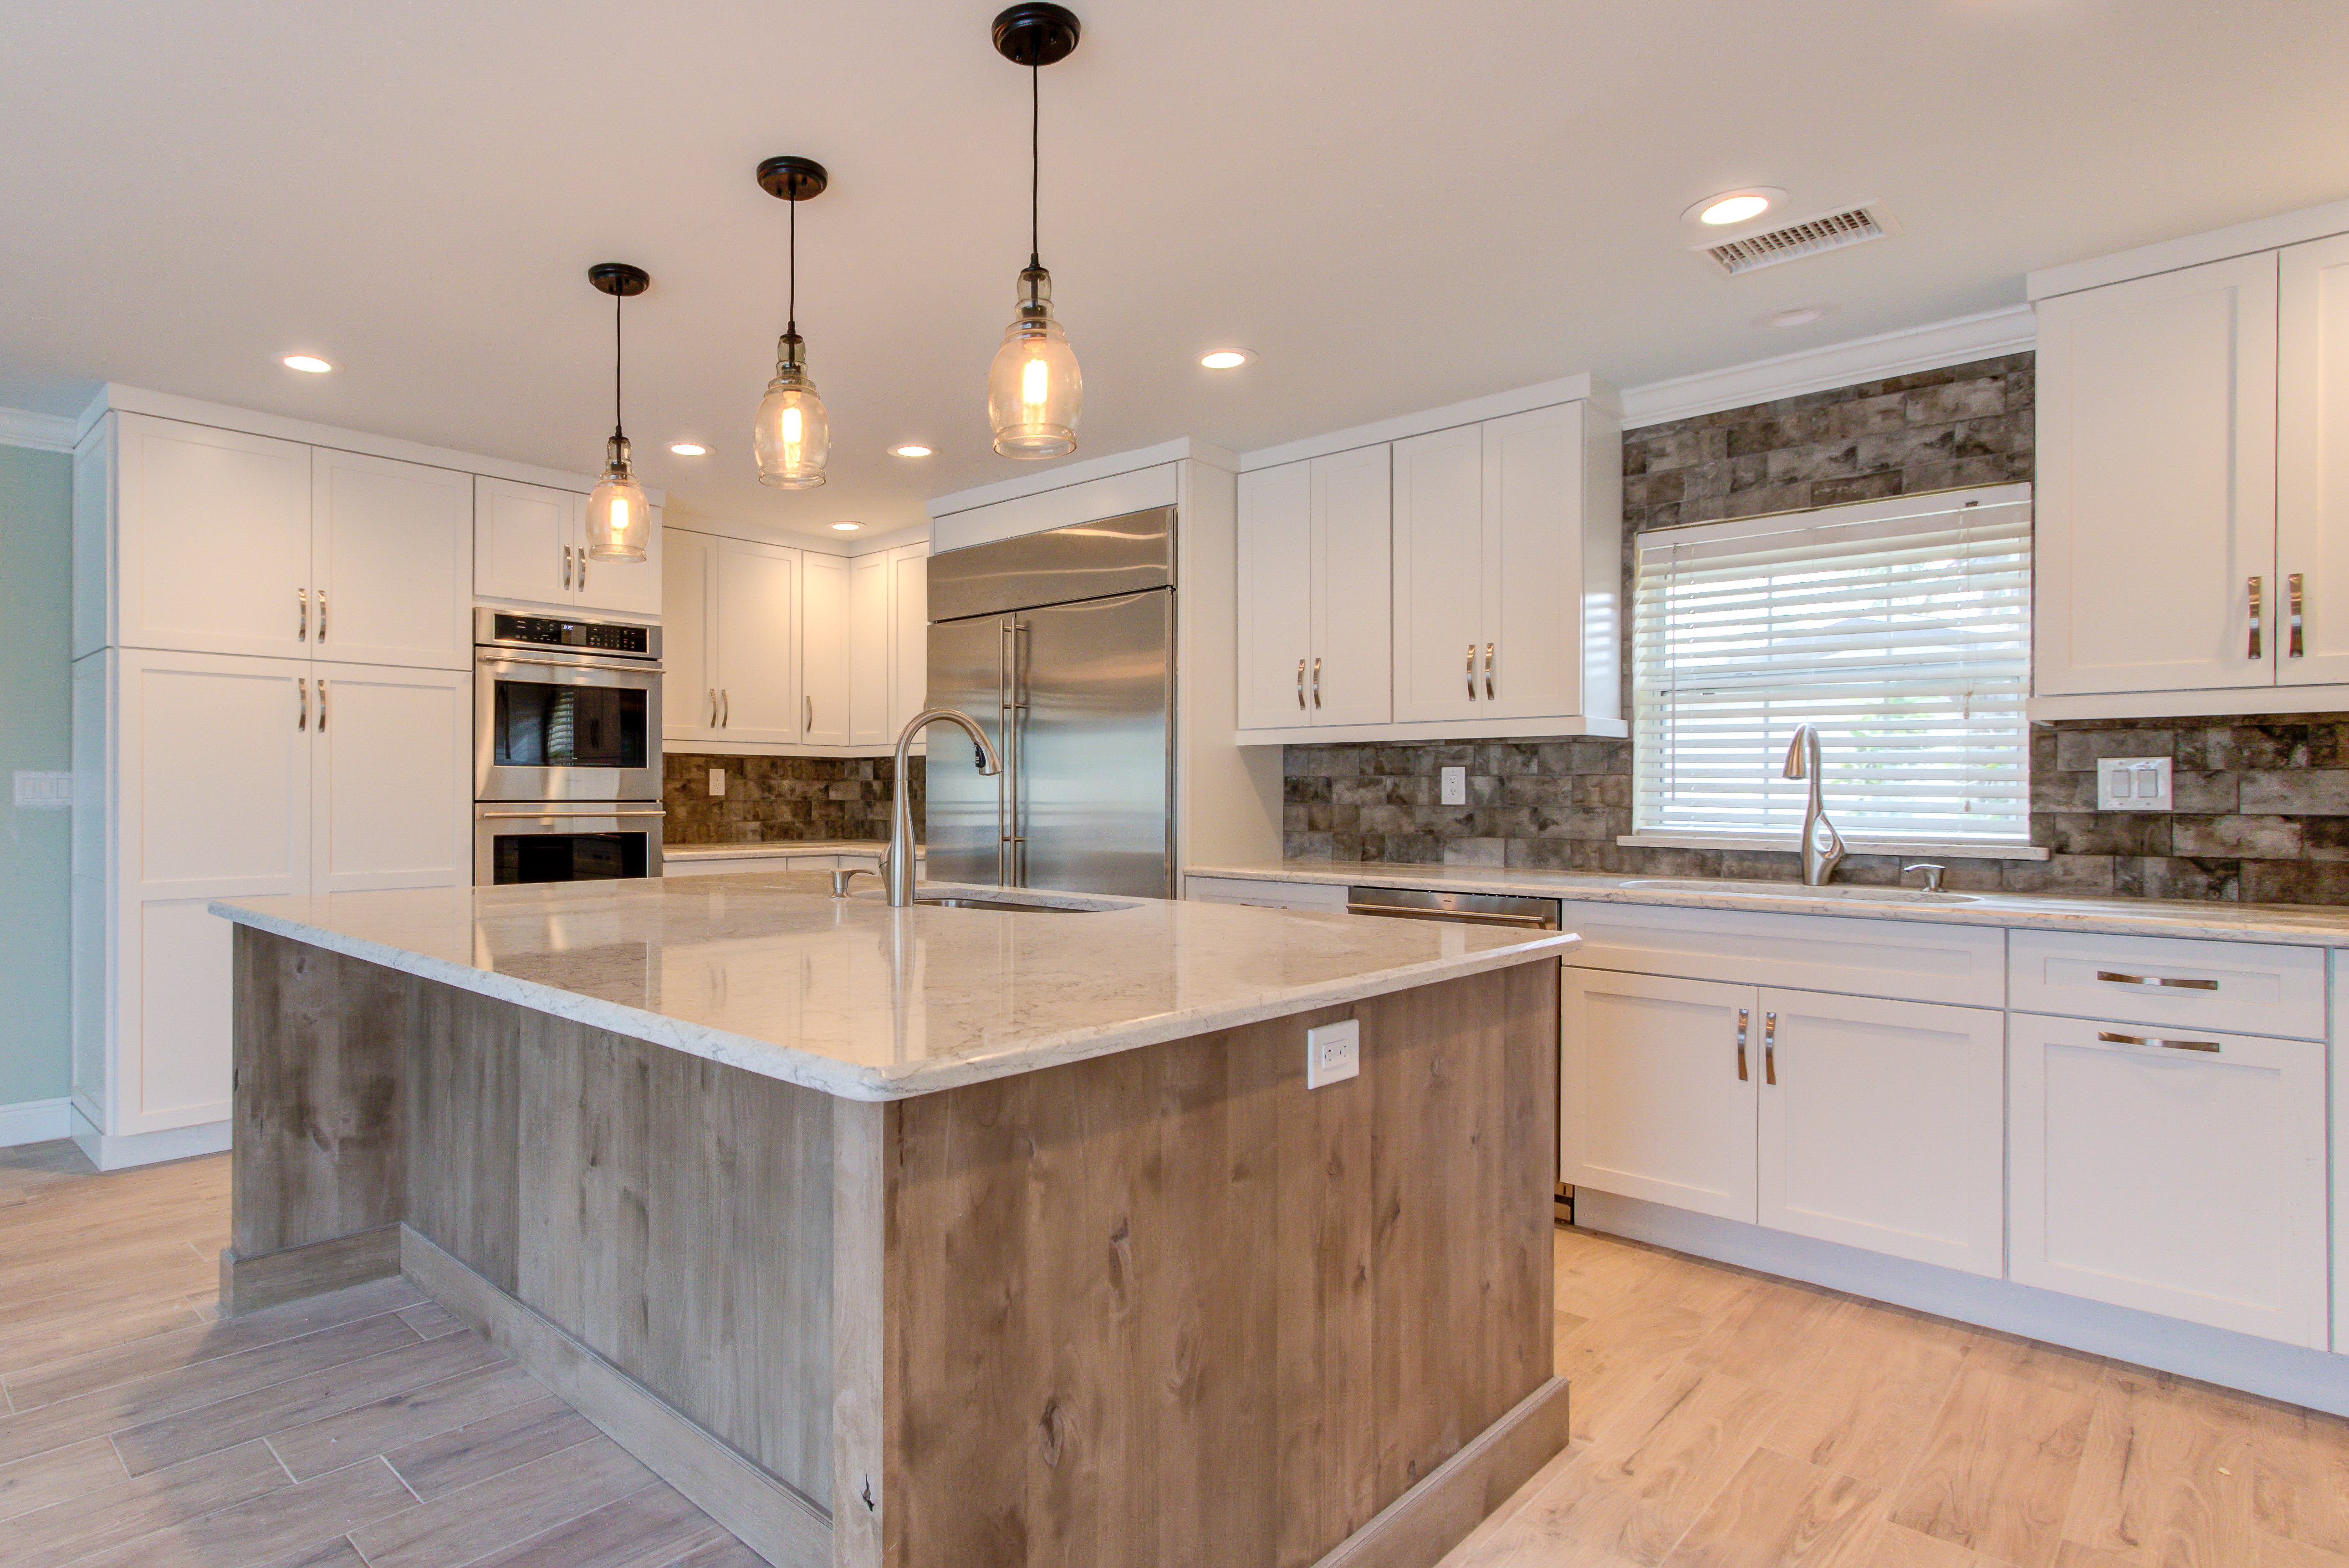 Pebblestone Remodel | Cabinet Genies - Kitchen and ...